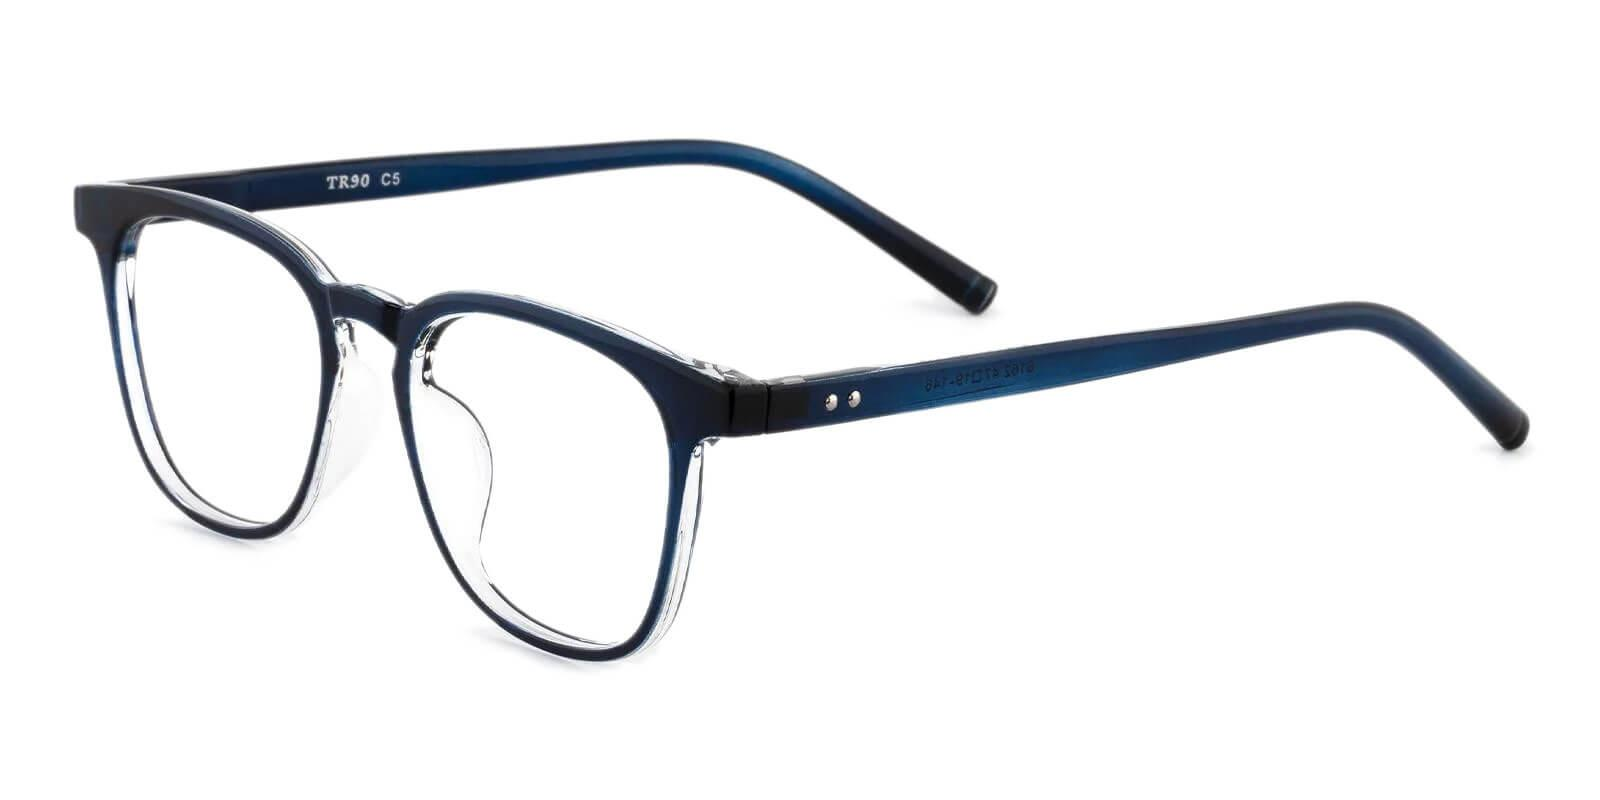 Zaire Blue TR Eyeglasses , UniversalBridgeFit Frames from ABBE Glasses